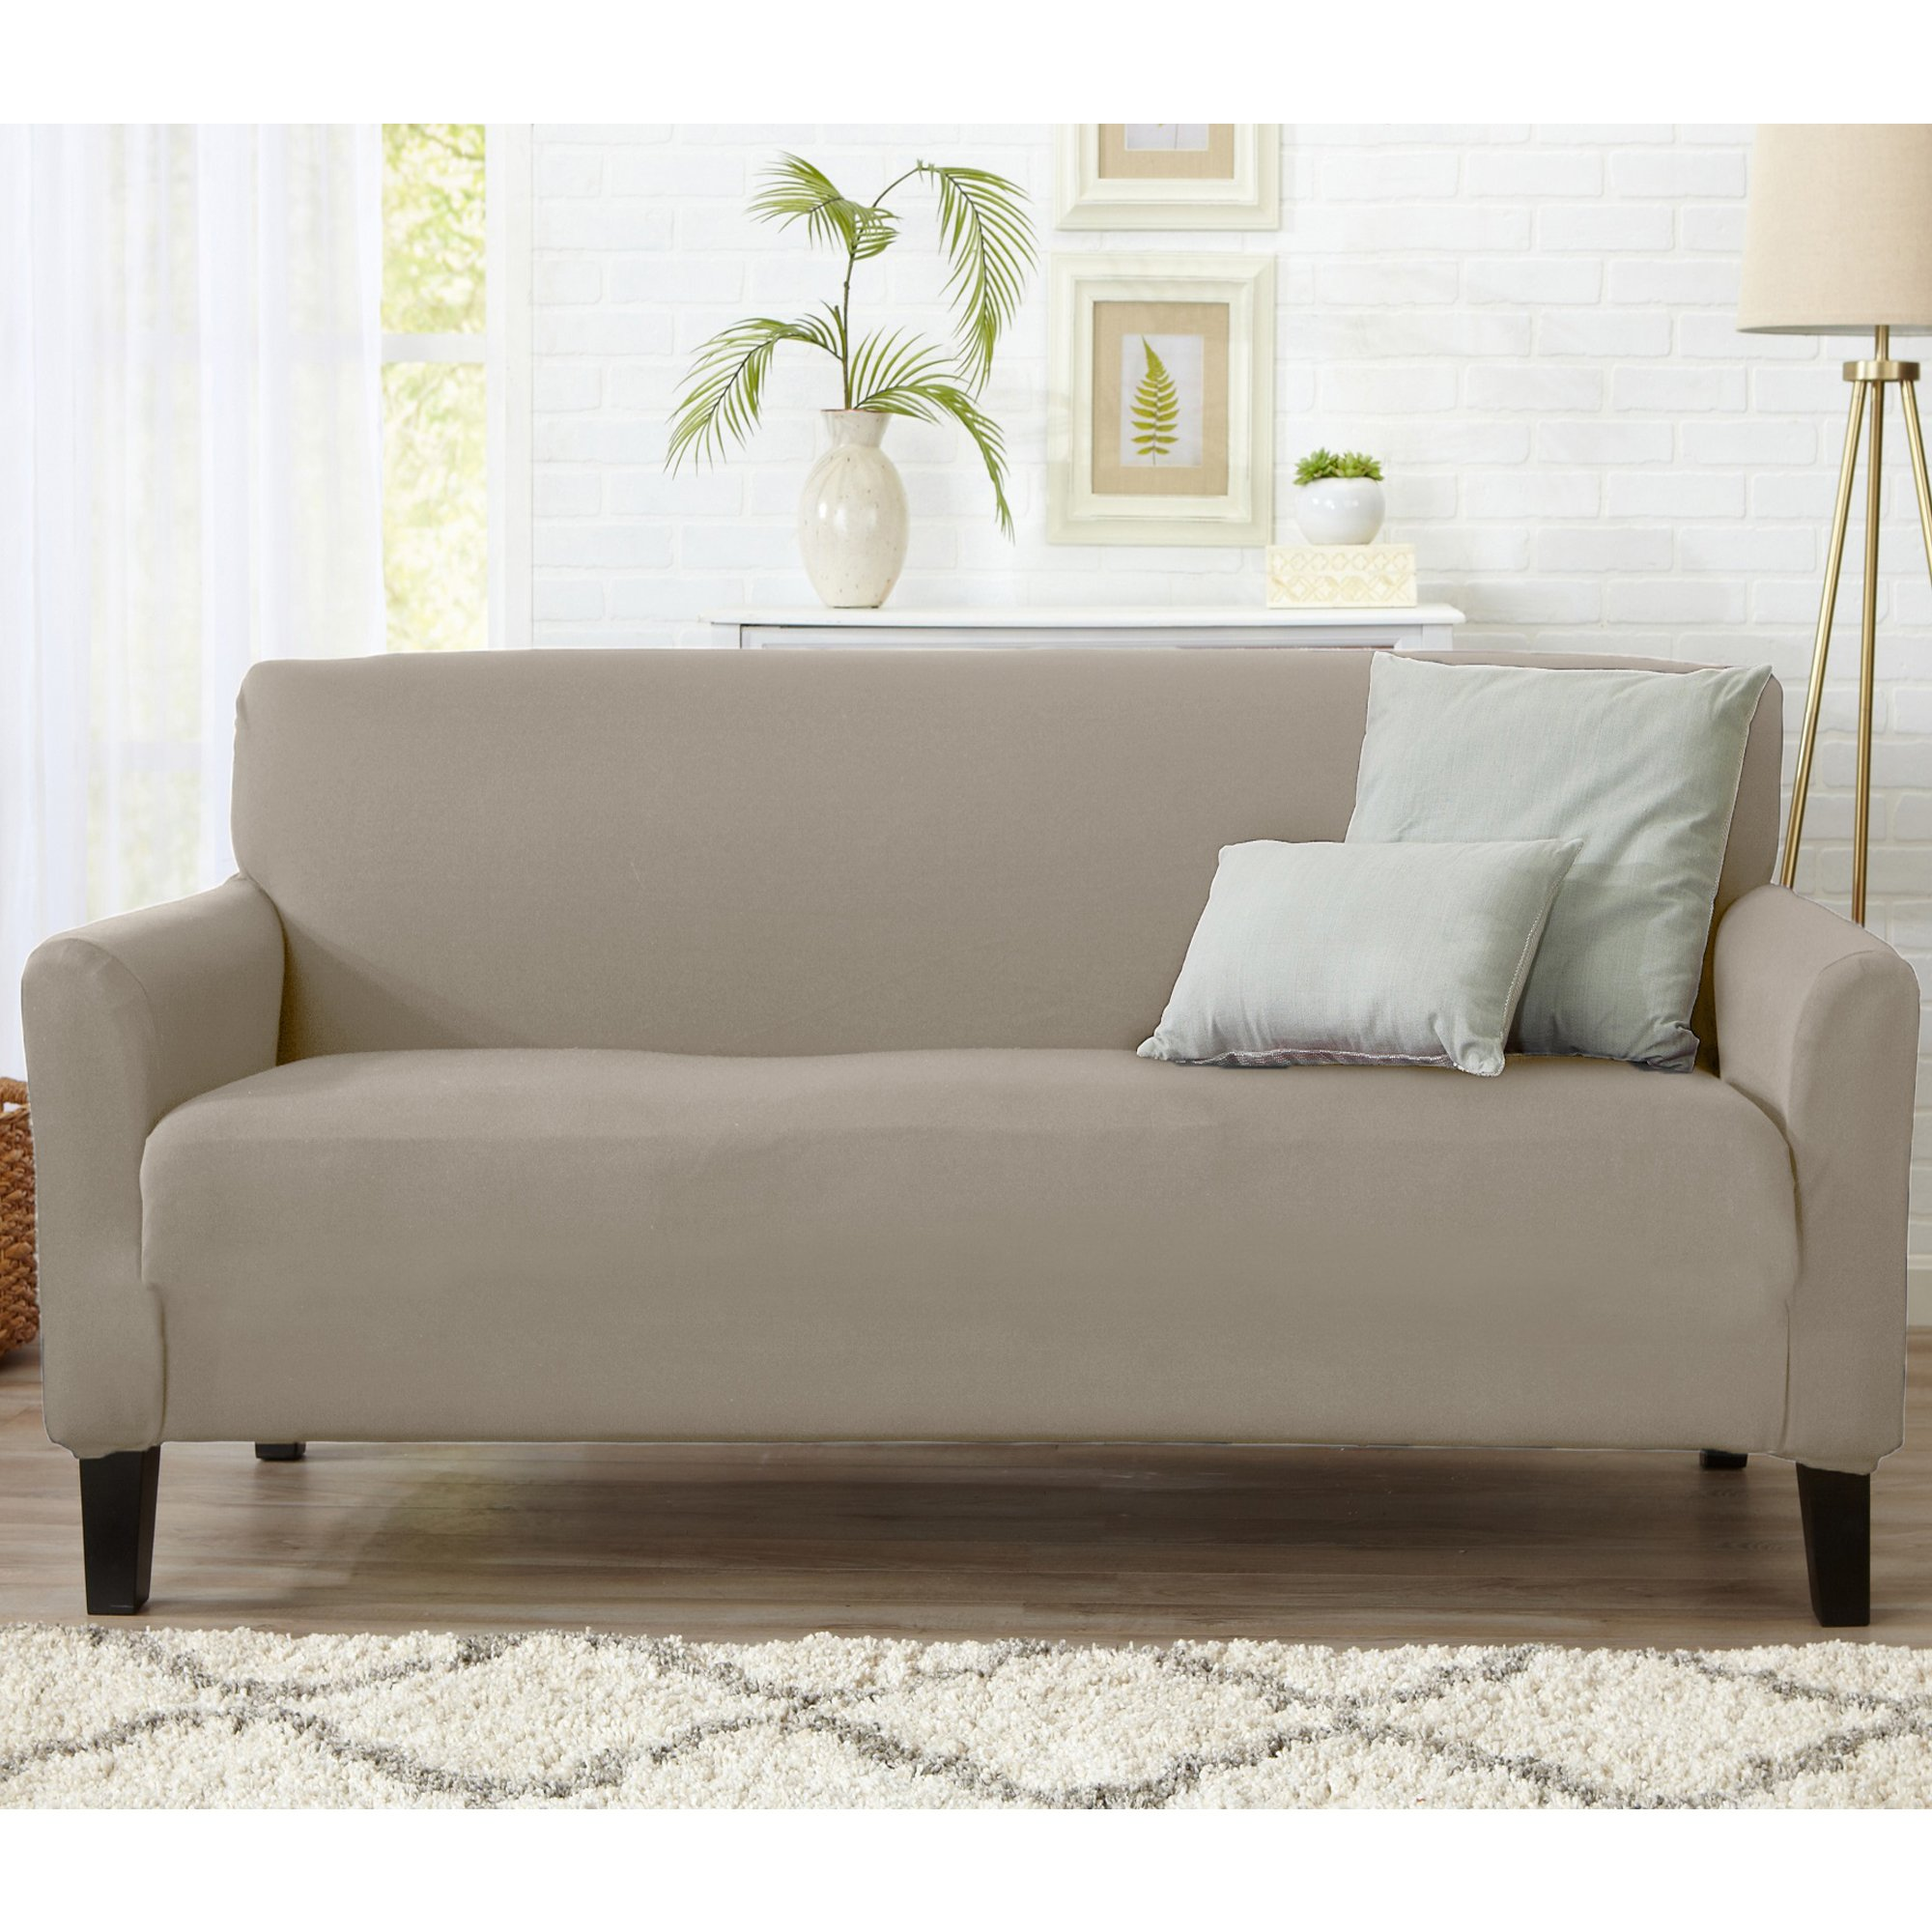 Home Fashion Designs Form Fit, Slip Resistant, Stylish Furniture Cover/Protector Featuring Lightweight Stretch Twill Fabric. Brenna Collection Strapless Slipcover. By Brand. (Sofa, Beige - Solid)